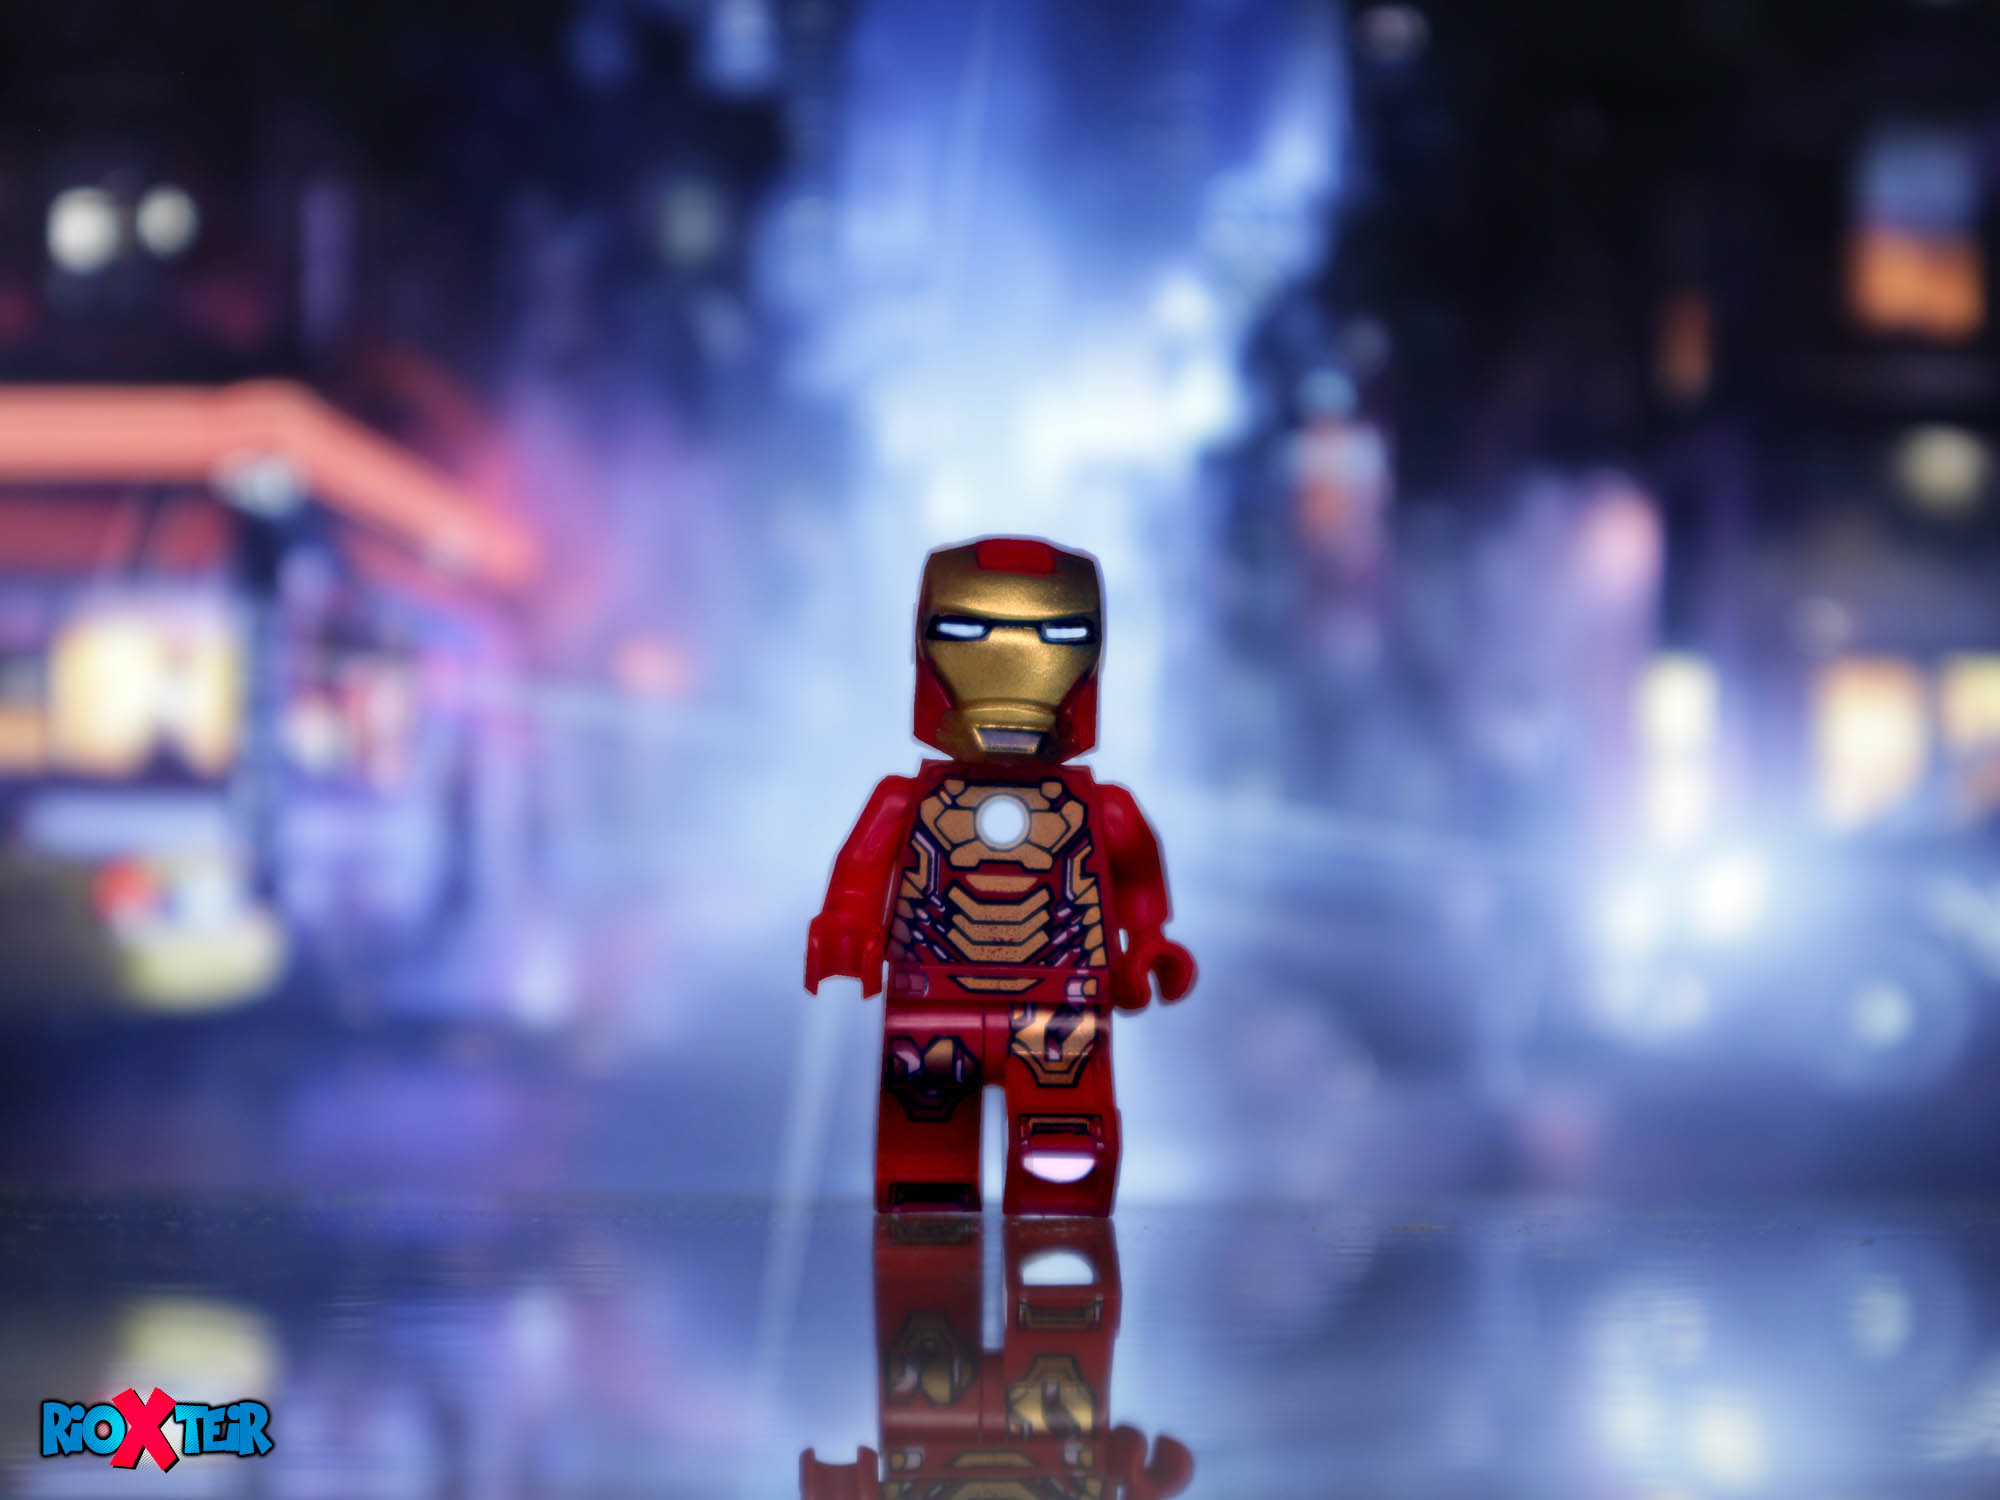 Lego Iron Man Walking On The Street